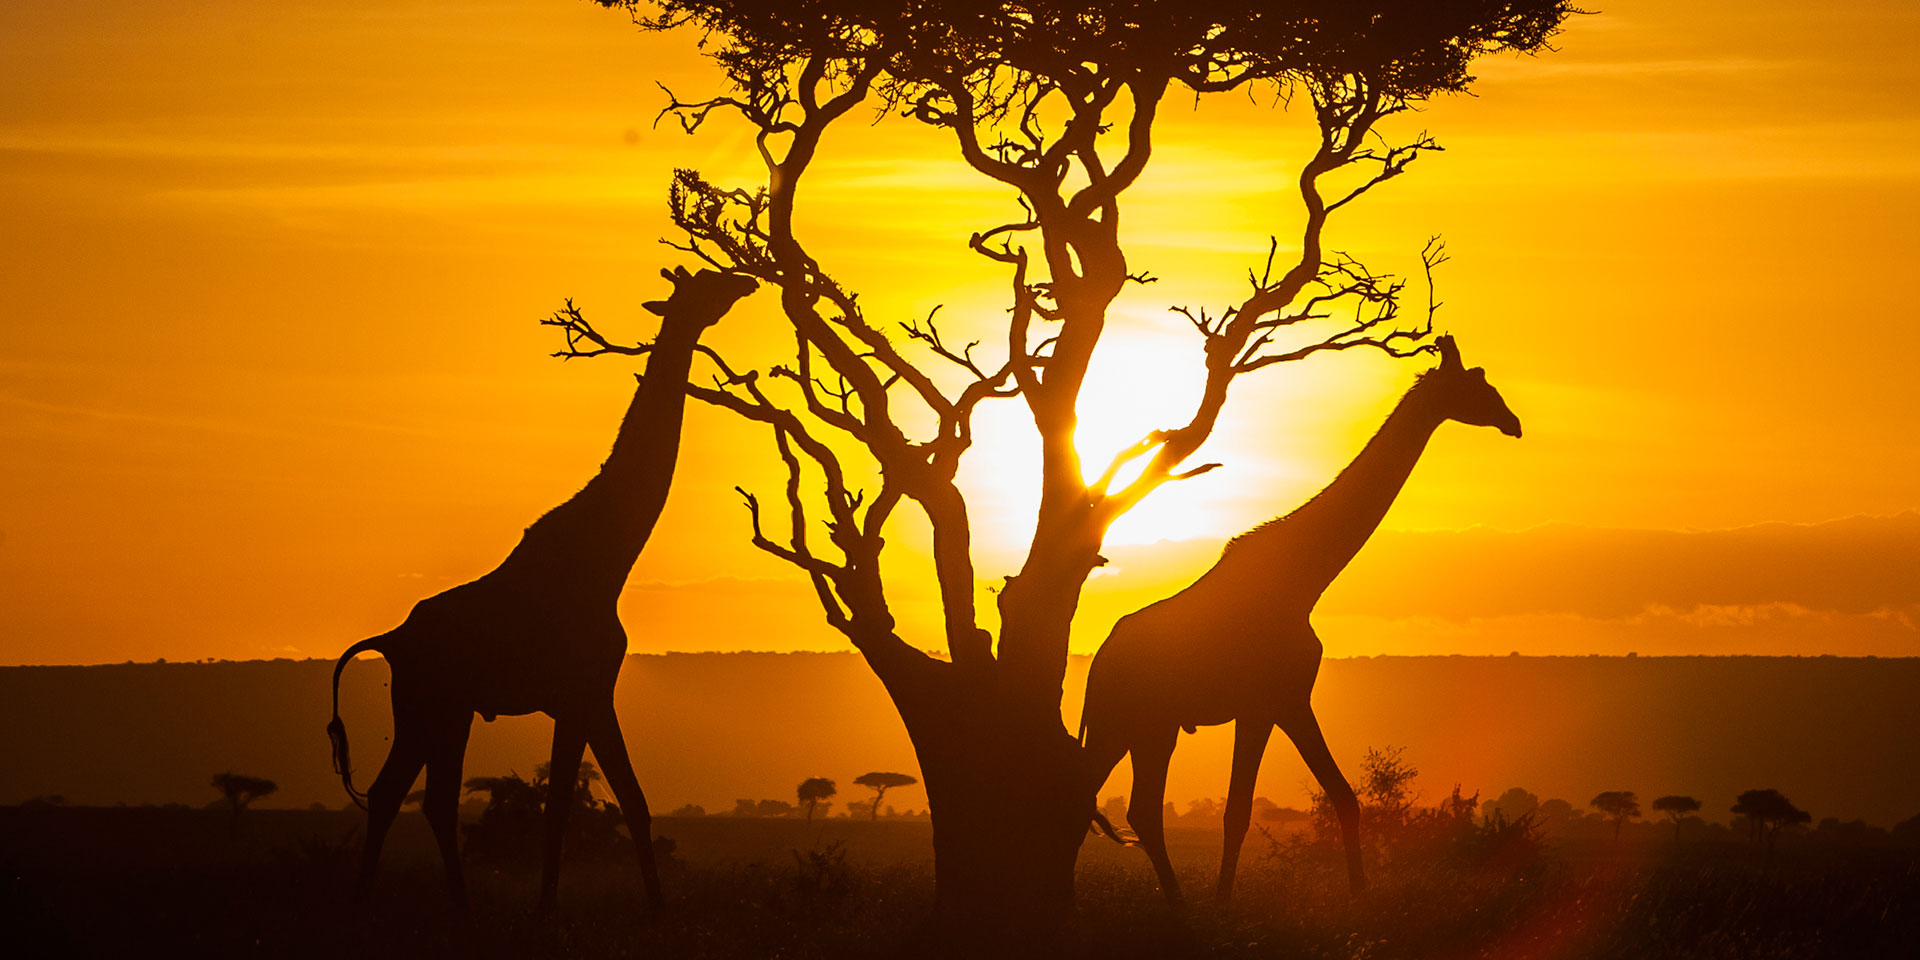 Couple of Giraffes in Sunset in Kenya